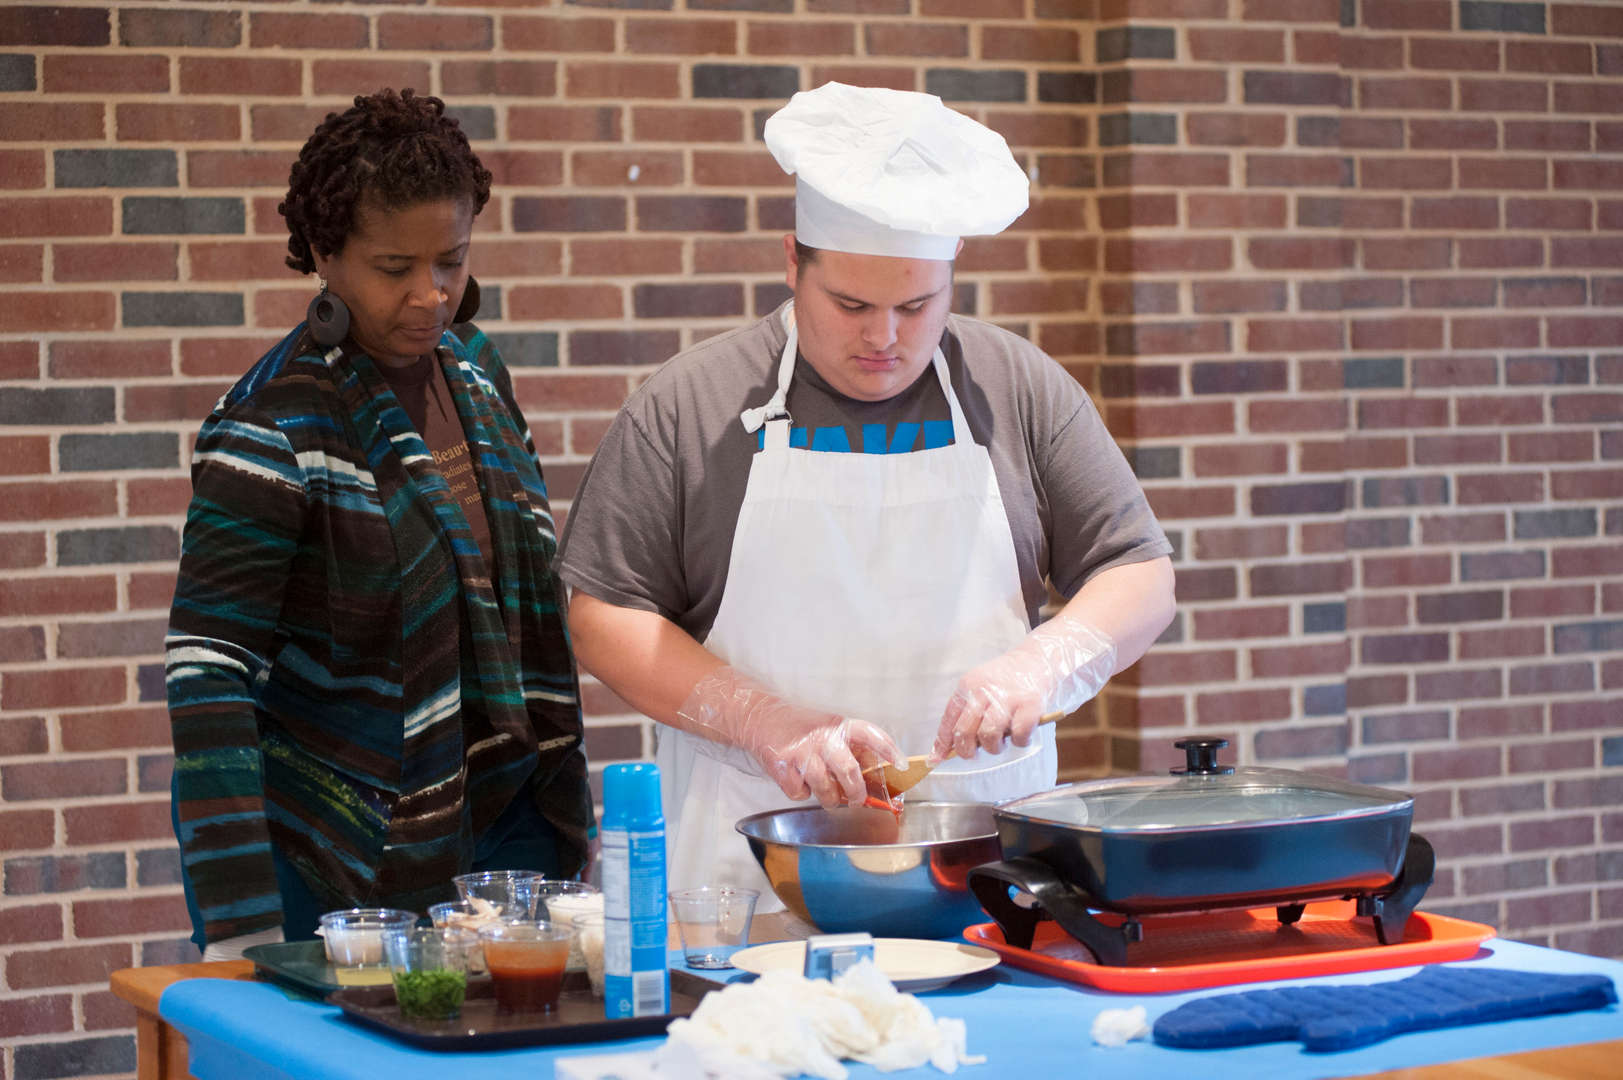 Governor Morehead student demonstrates how to cook hawaiian chicken during the November 30th Celebration of Cooking with the Visually Impaired Program.